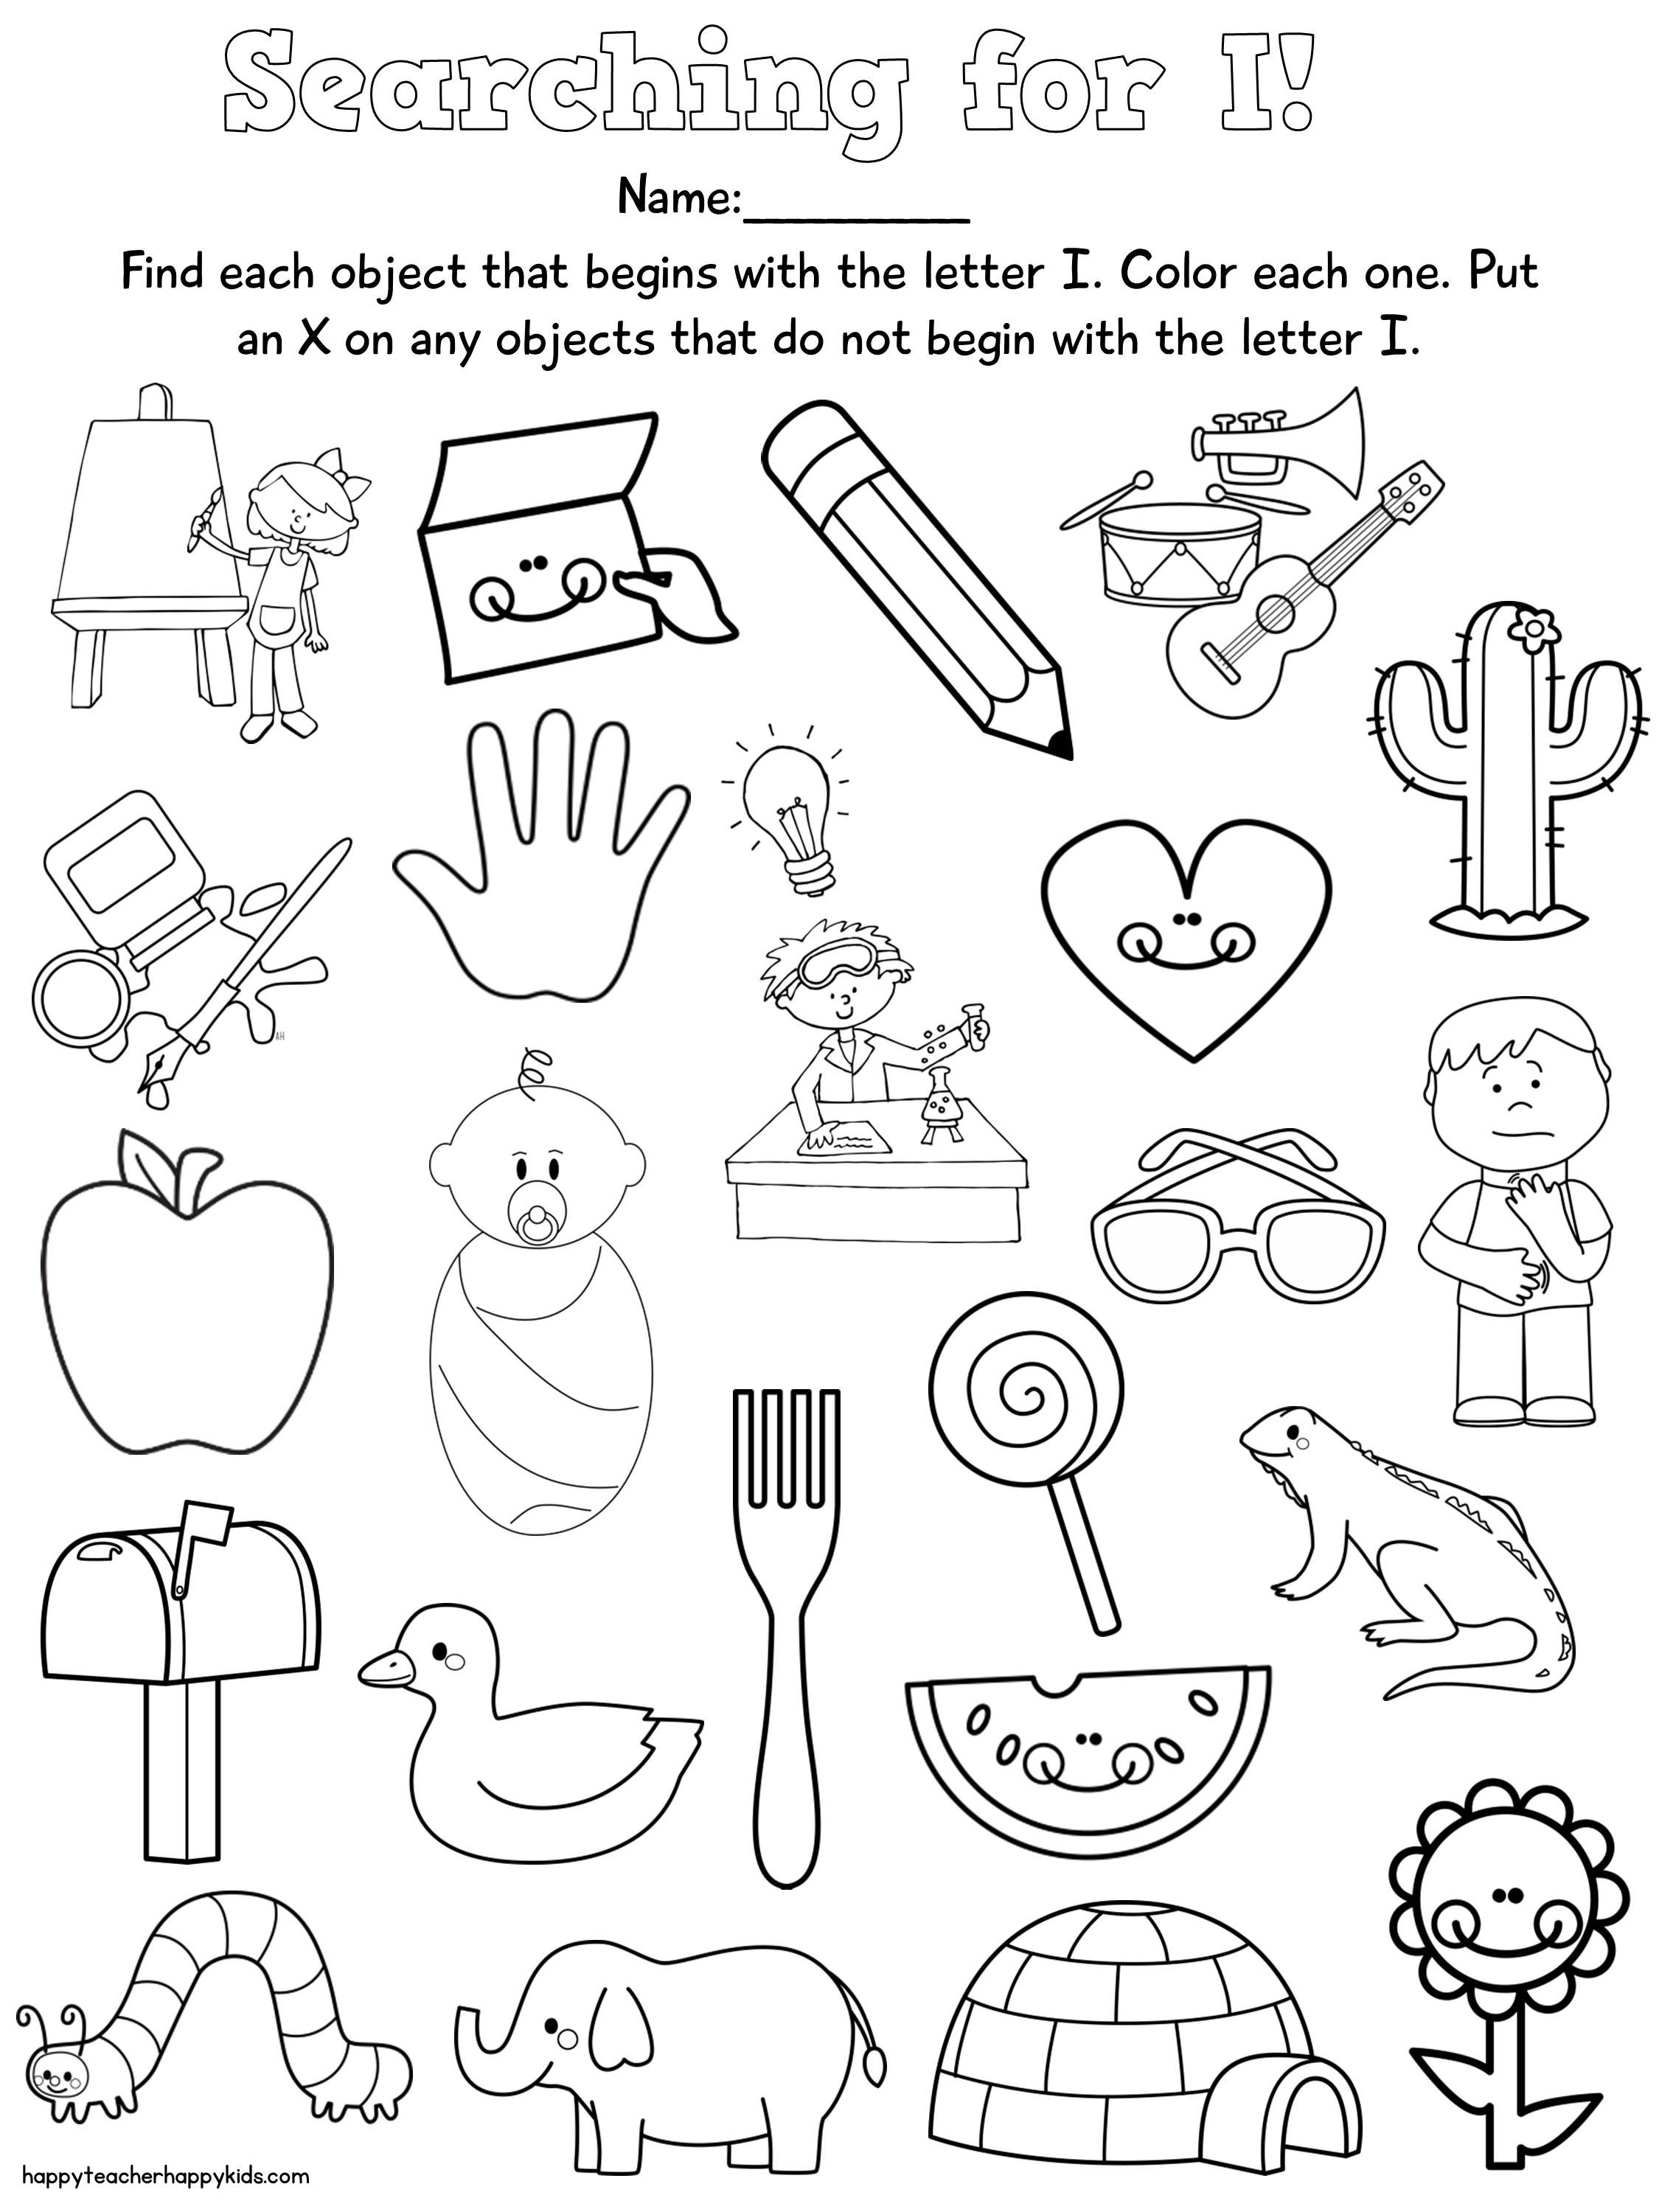 19 Best Worksheets Kindergarten Lesson Images On All About